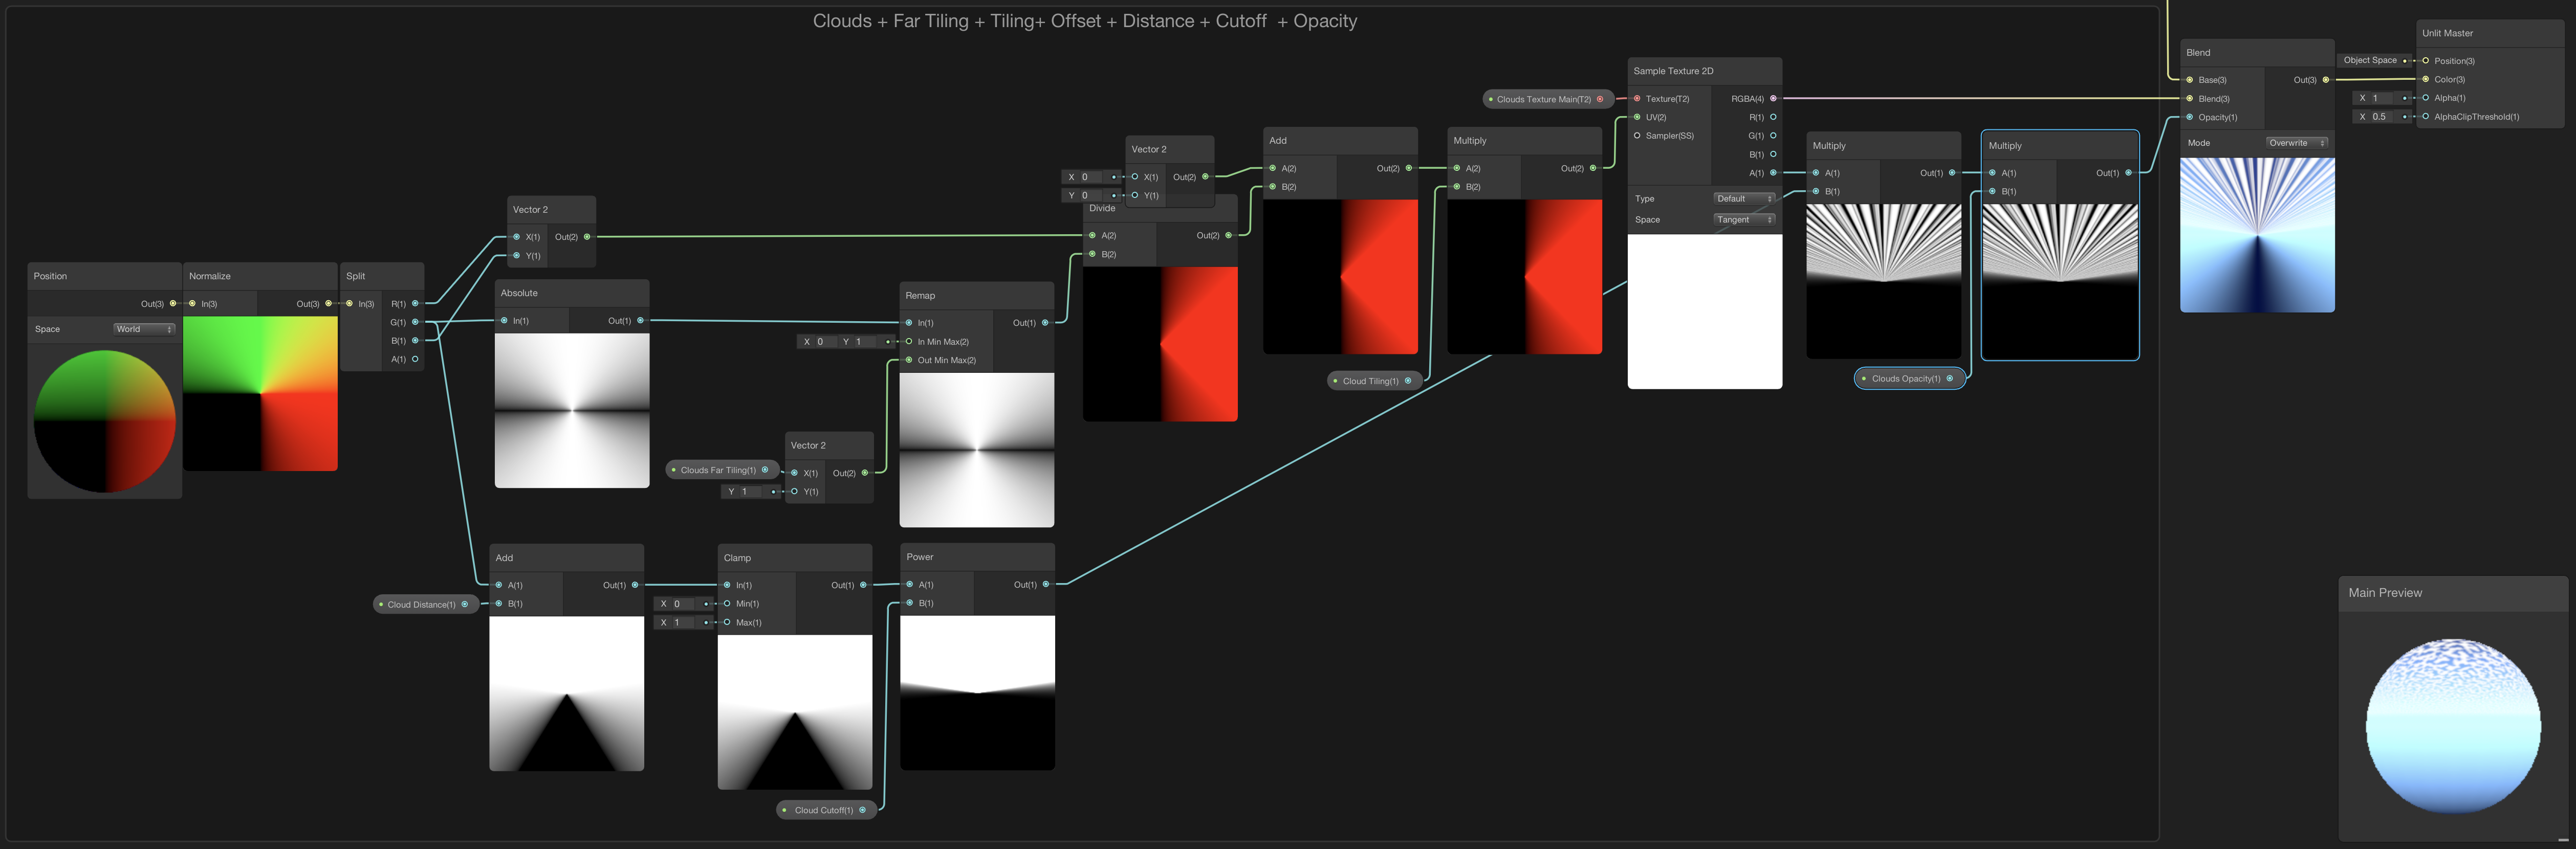 Image displaying the shader graph node setup to add texture opacity to the clouds layer.